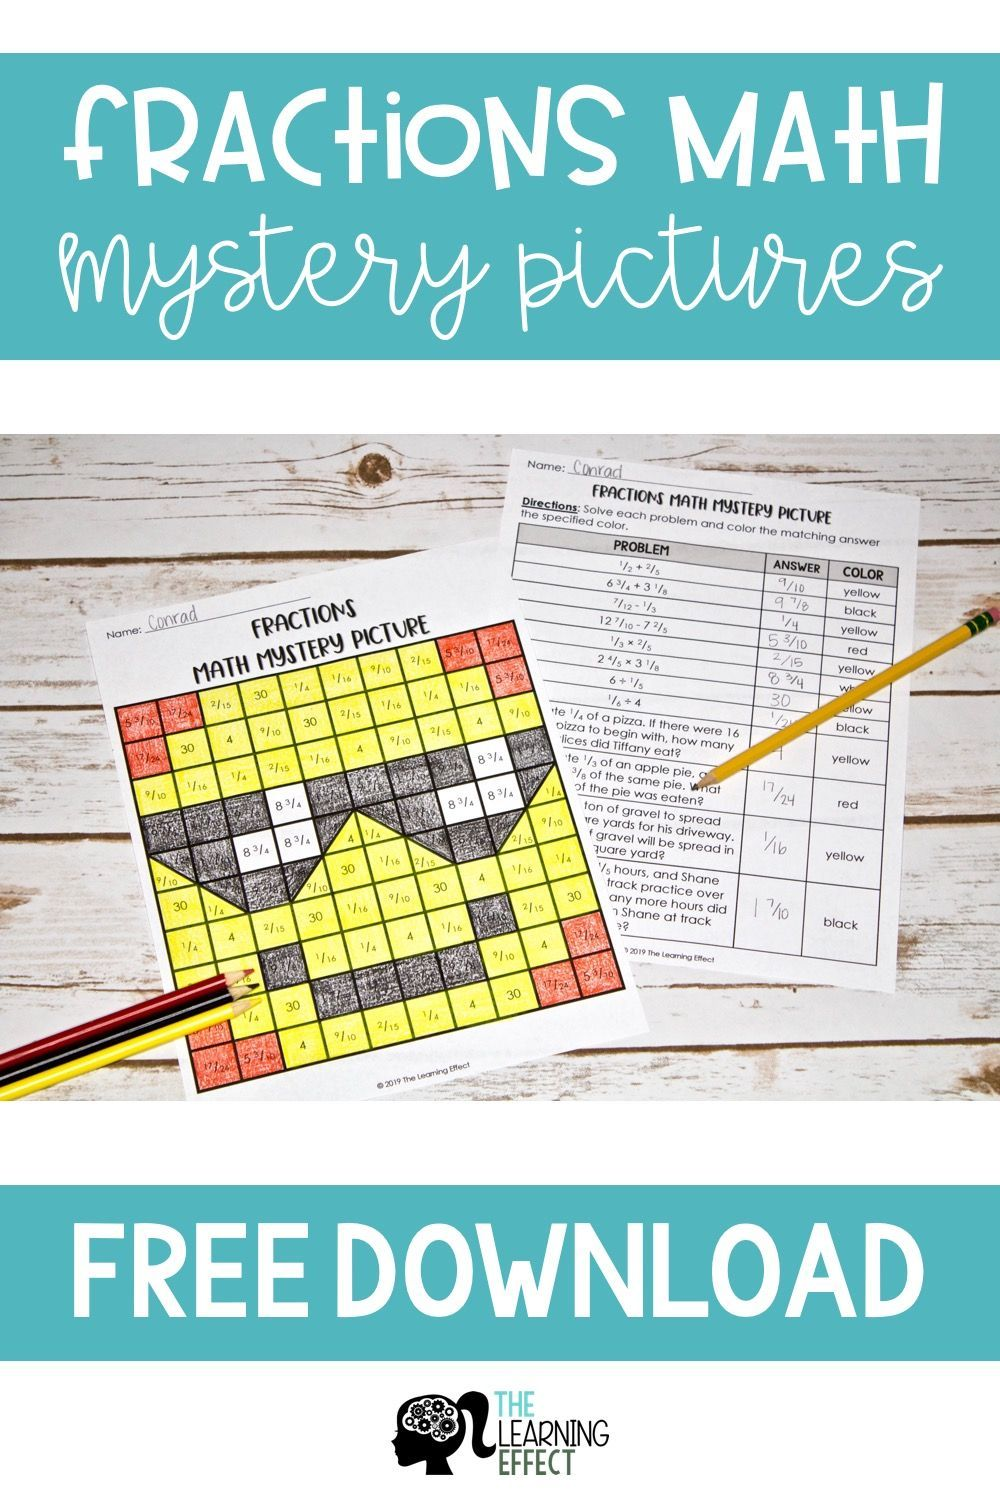 Free Fractions Math Mystery Picture Practice Adding Subtracting Multiplying And Dividing Fractions With T Math Fractions Math Mystery Picture Math Mystery [ 1500 x 1000 Pixel ]